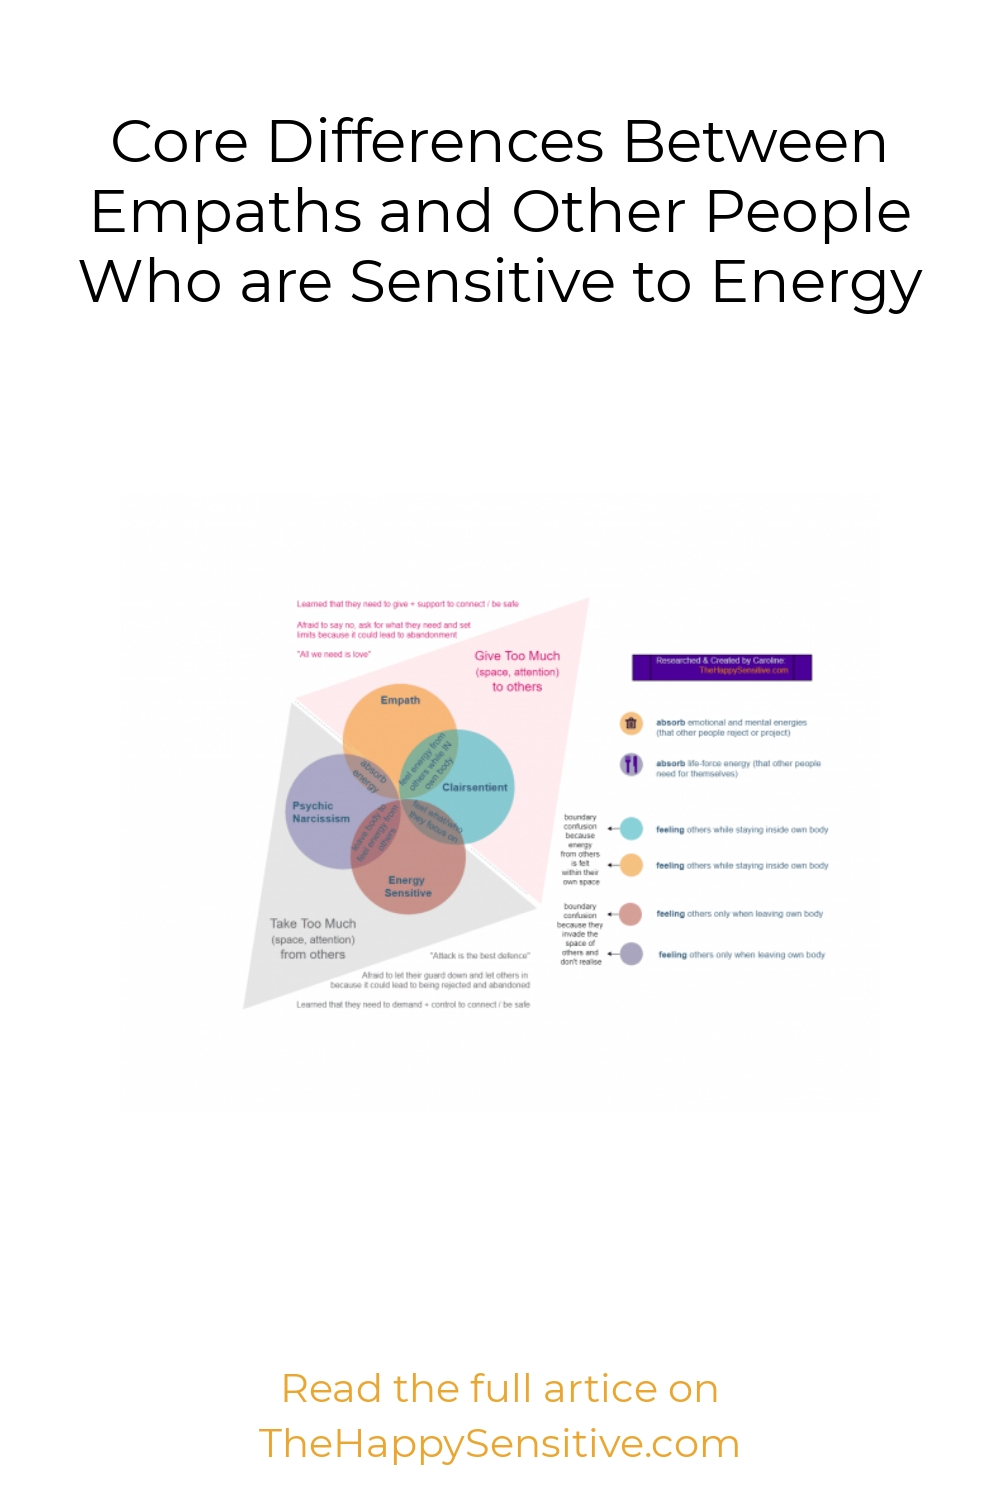 Core Differences Between Empaths and Other People Who are Sensitive to Energy